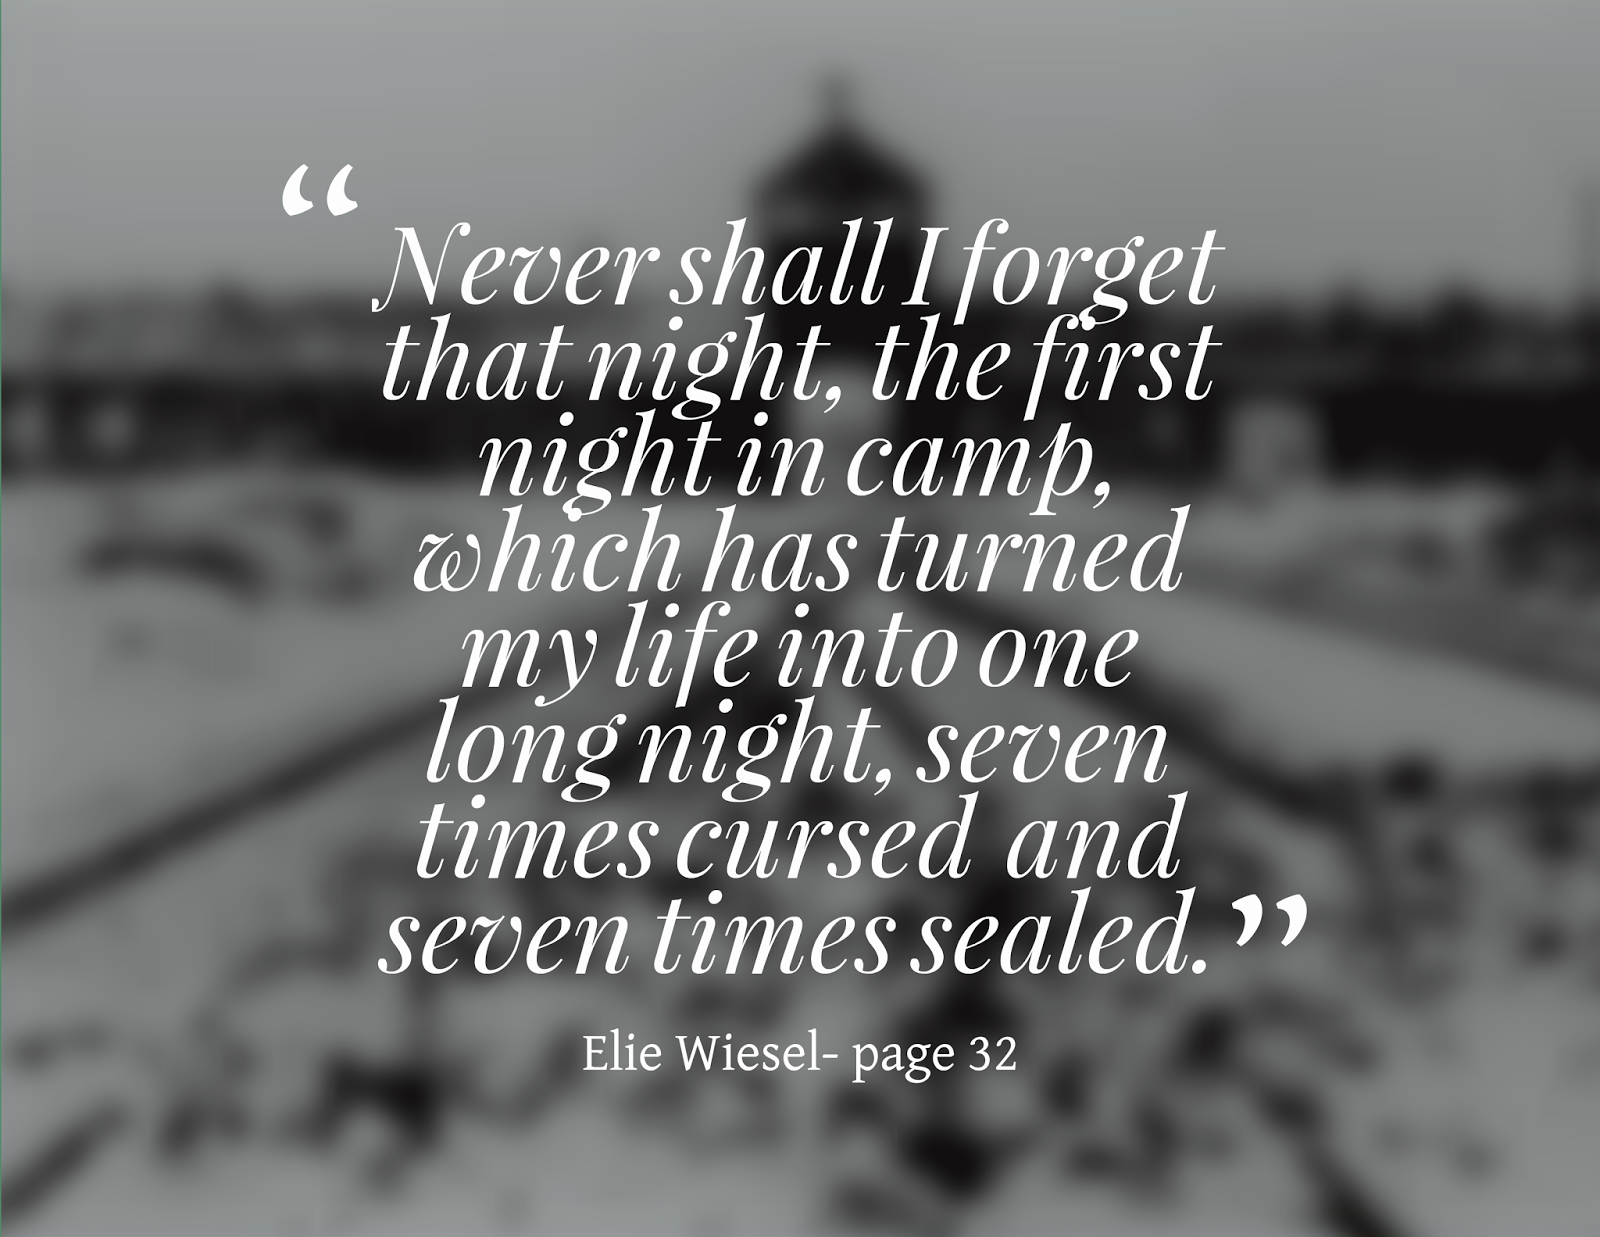 Night Quotes By Elie Wiesel With Page Numbers